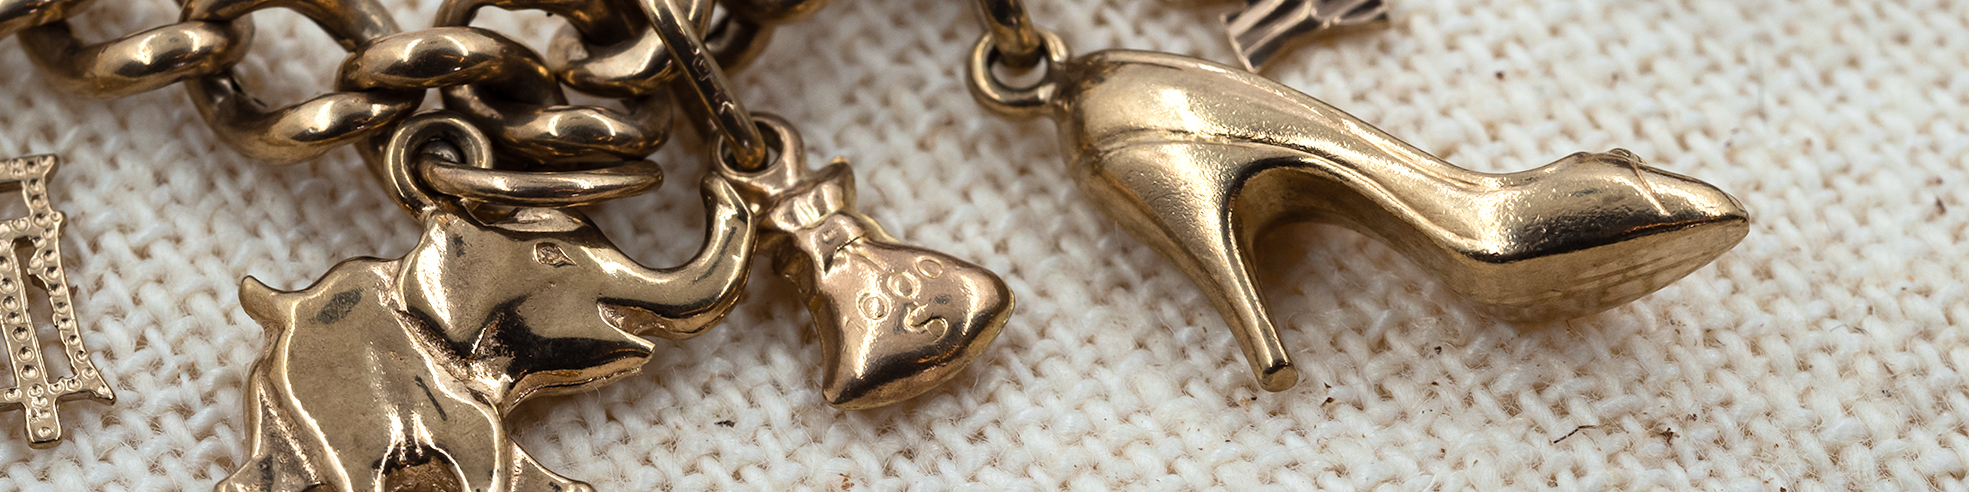 Gold & Silver Charms and pendants Australia at Monty's